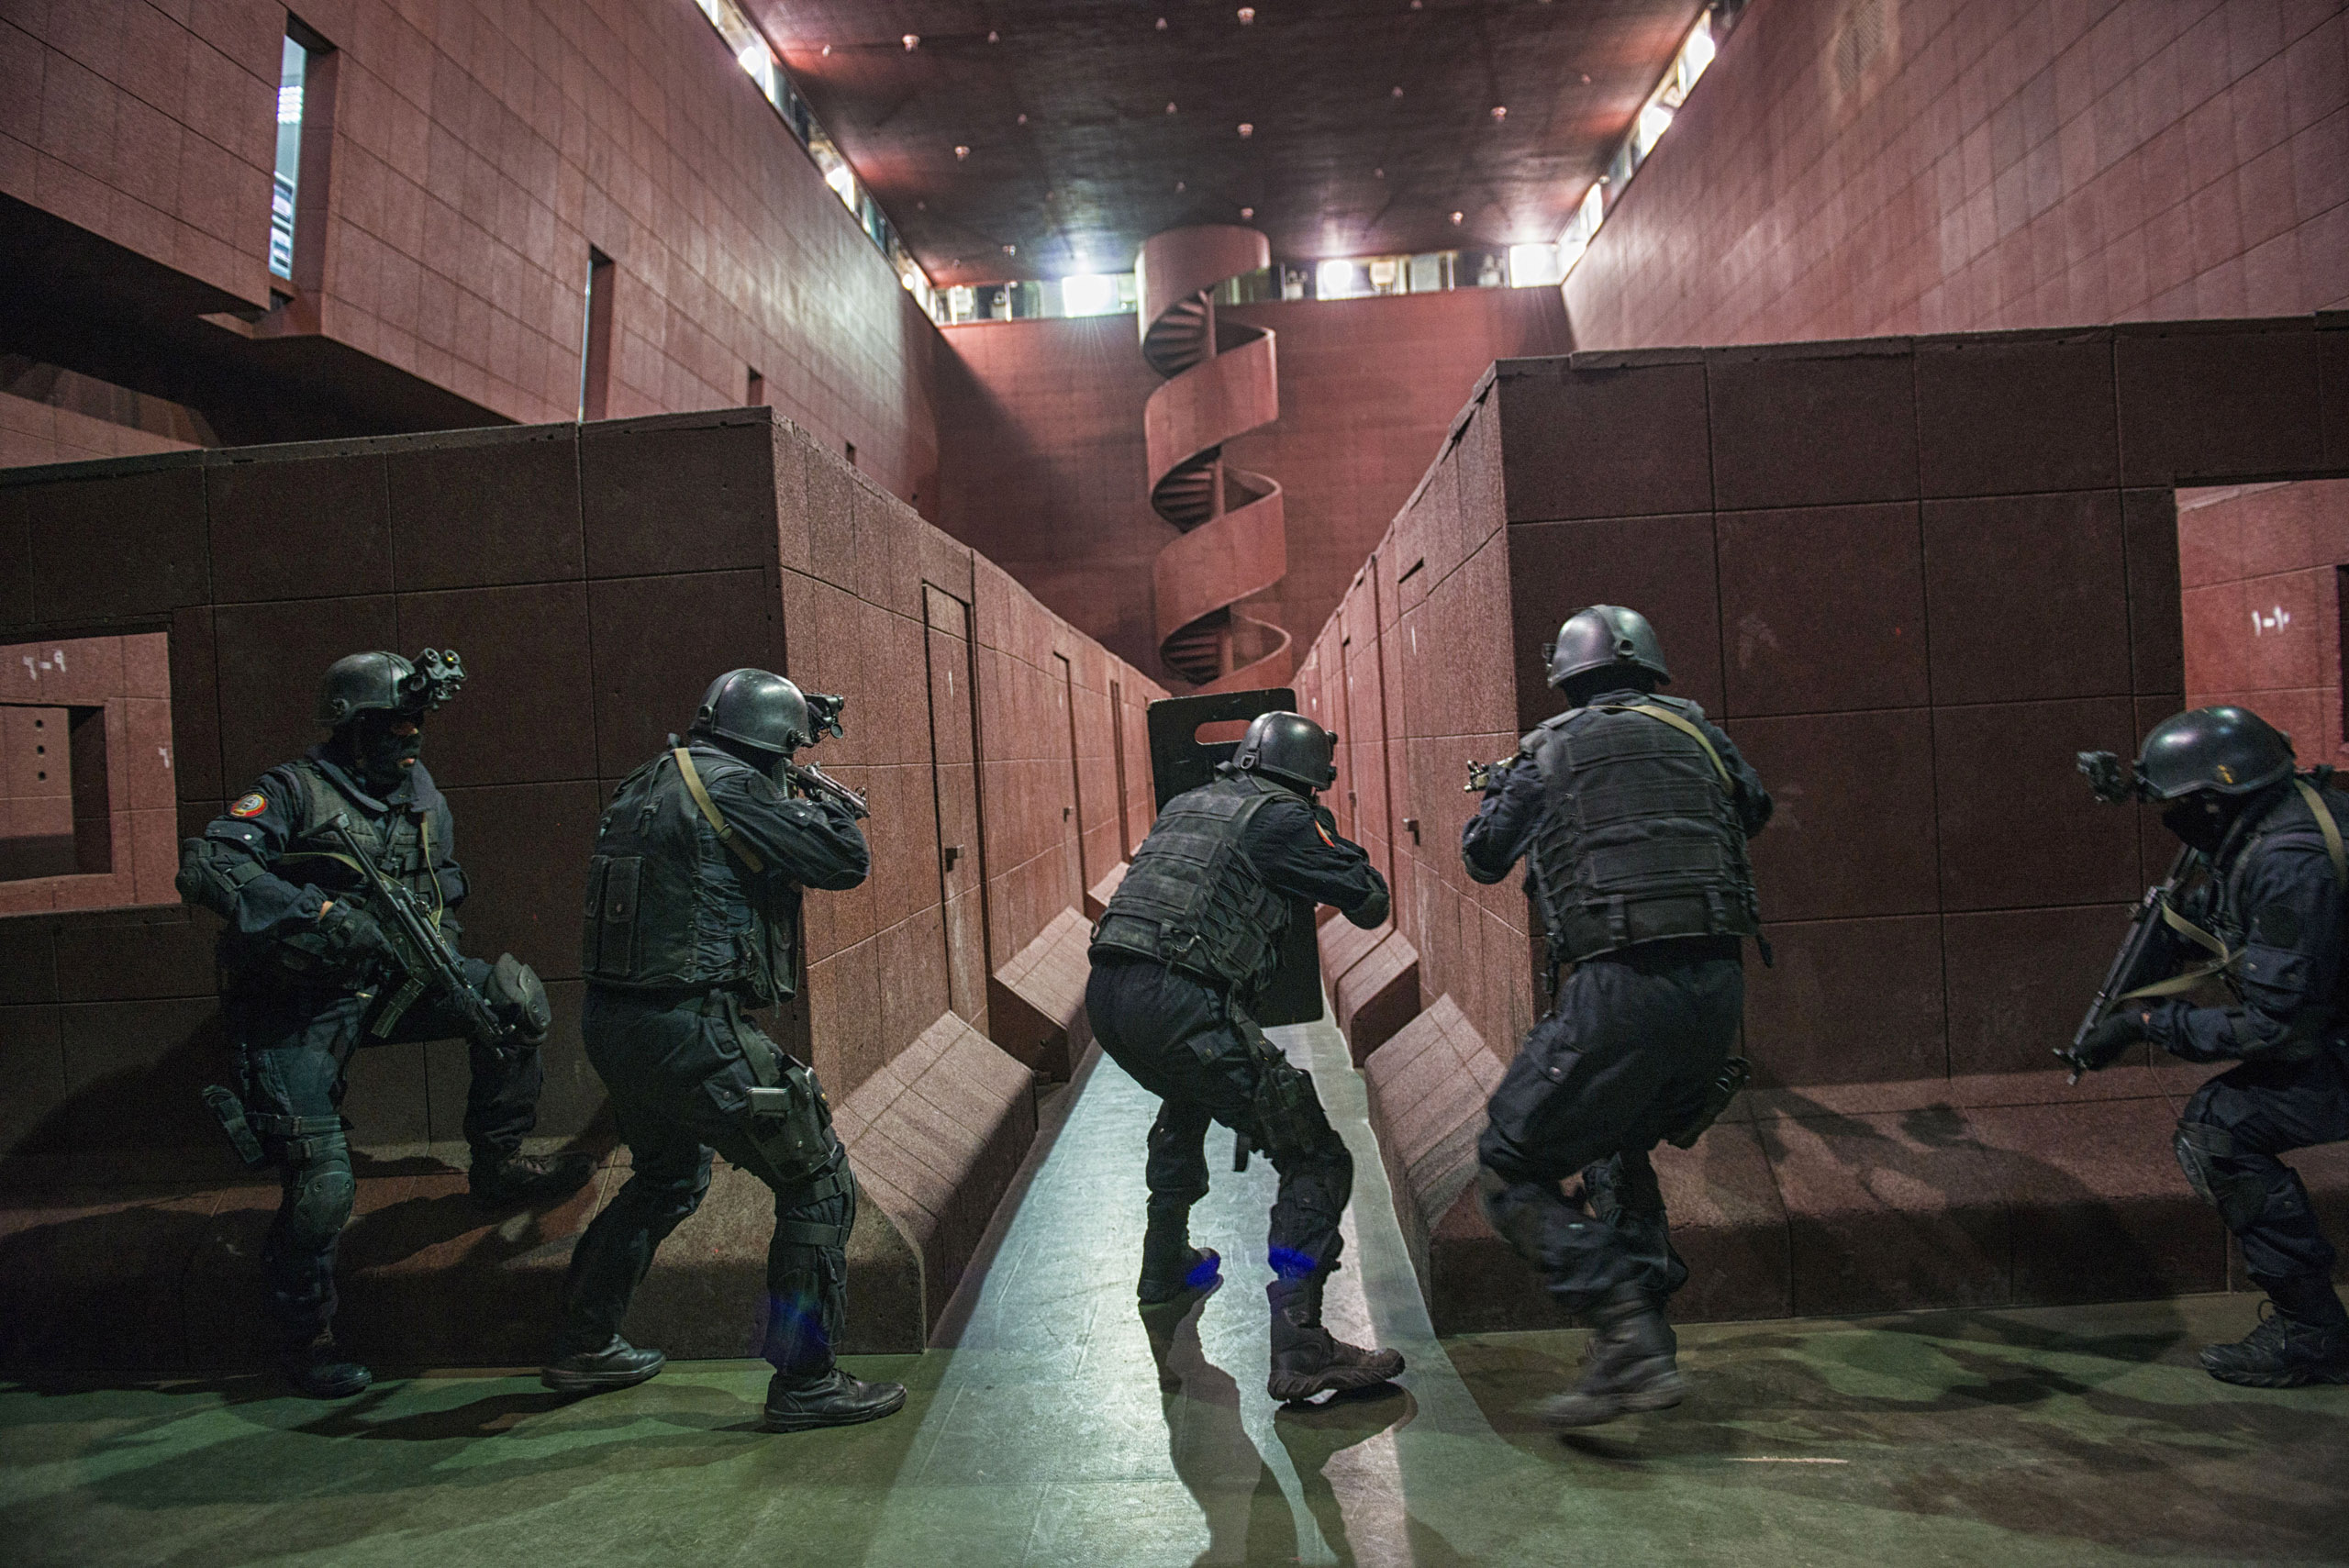 Saudi Special Security Forces perform a simulated raid on a terrorist compound at an indoor shooting range, March 5, 2013.